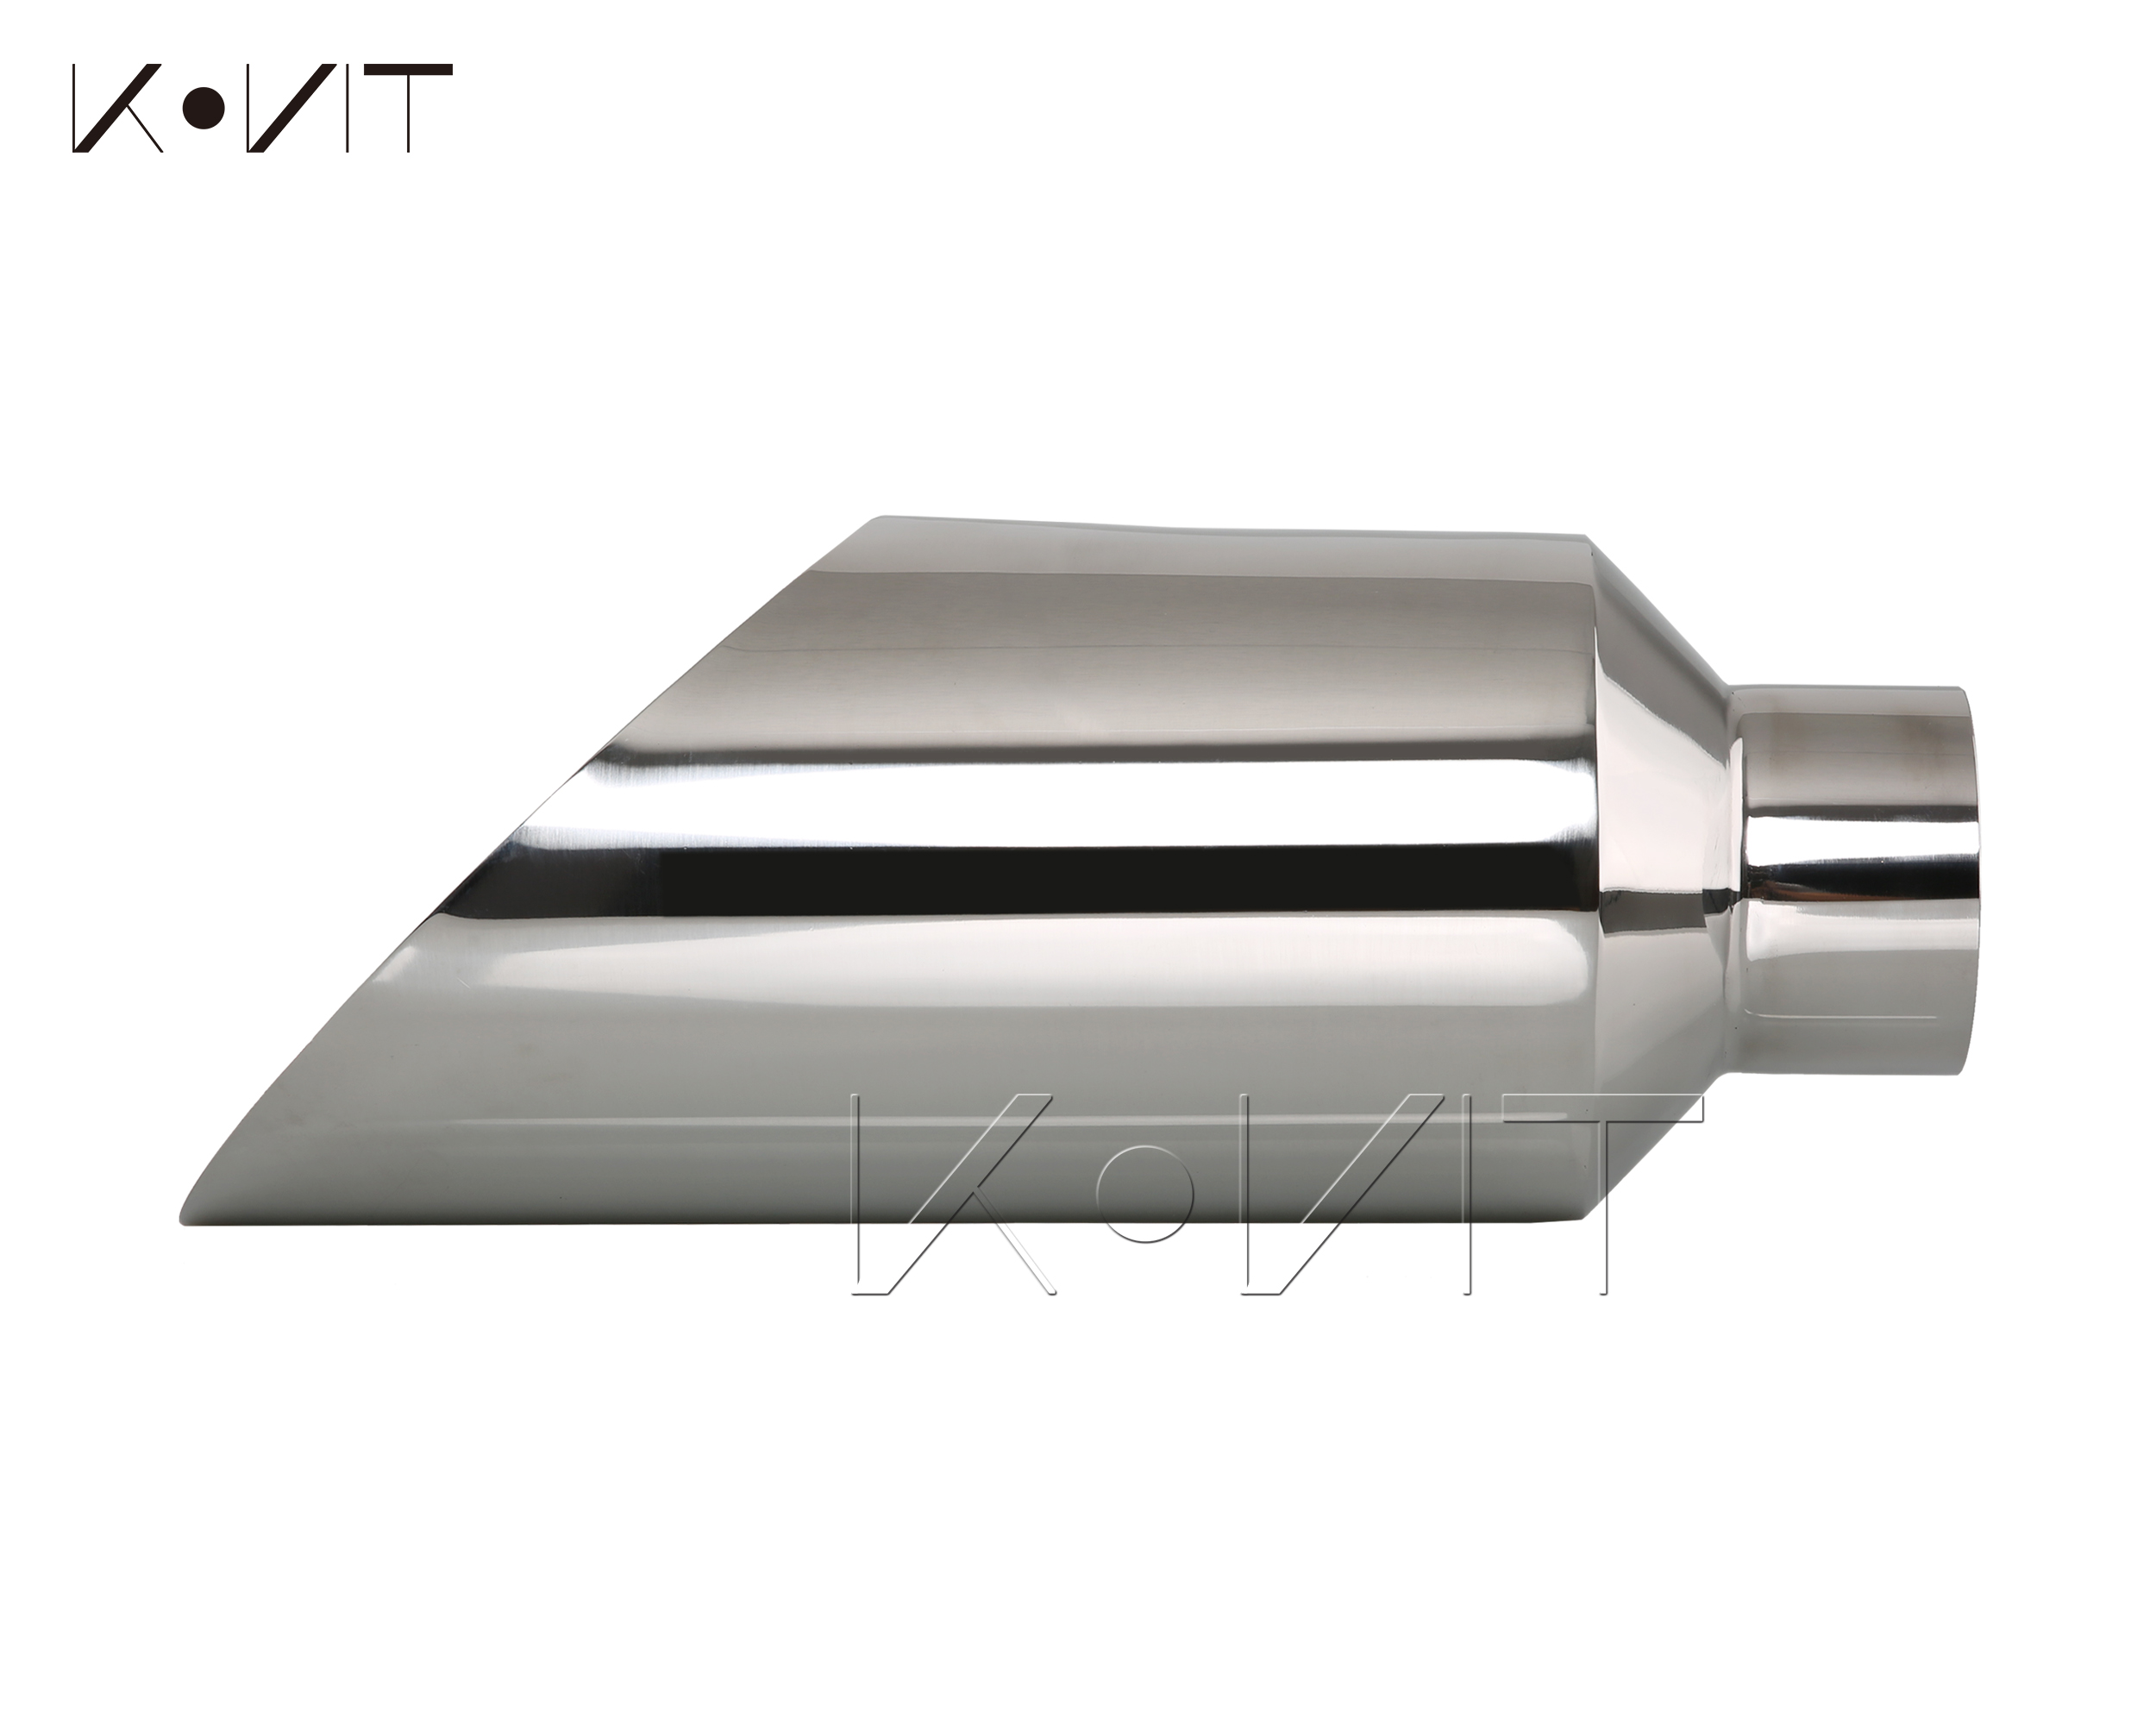 kovit 4 inlet 7 inch outlet 18 long slant angle cut diesel exhaust tip stack pipe walmart com